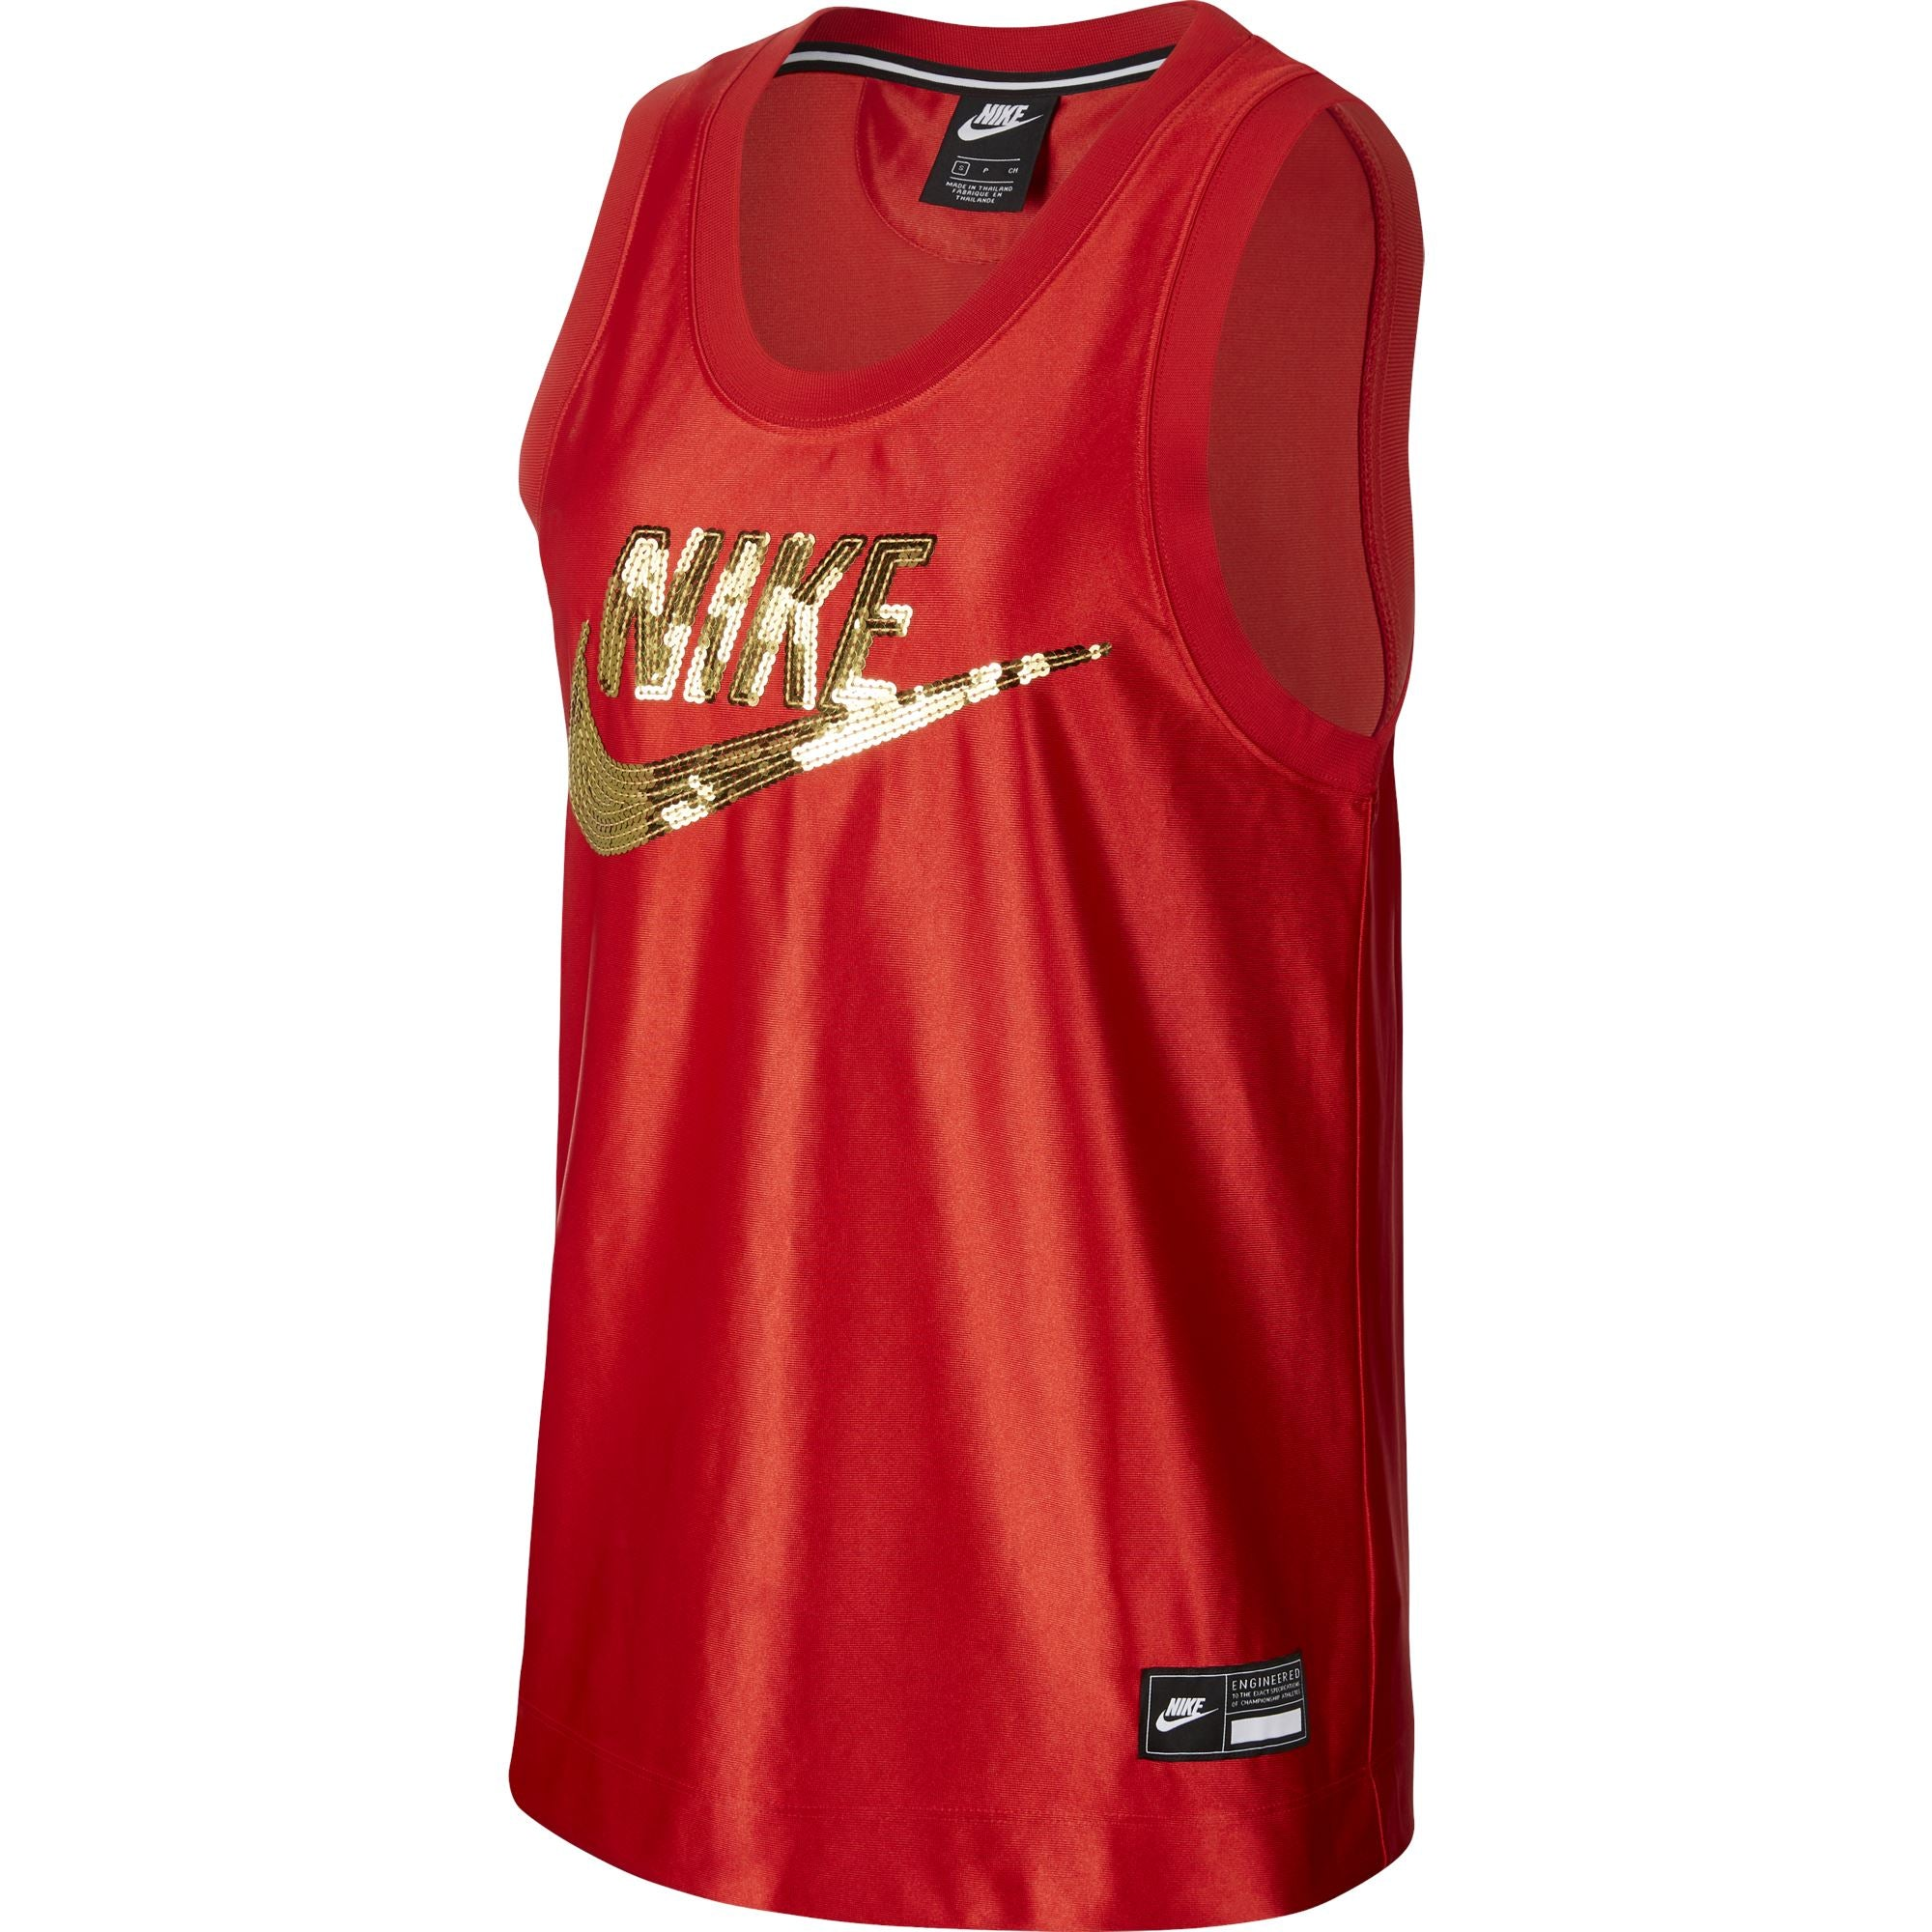 Nike Womens Sportswear Tank - University Red/Metallic Gold SP-ApparelTanks-Womens Nike